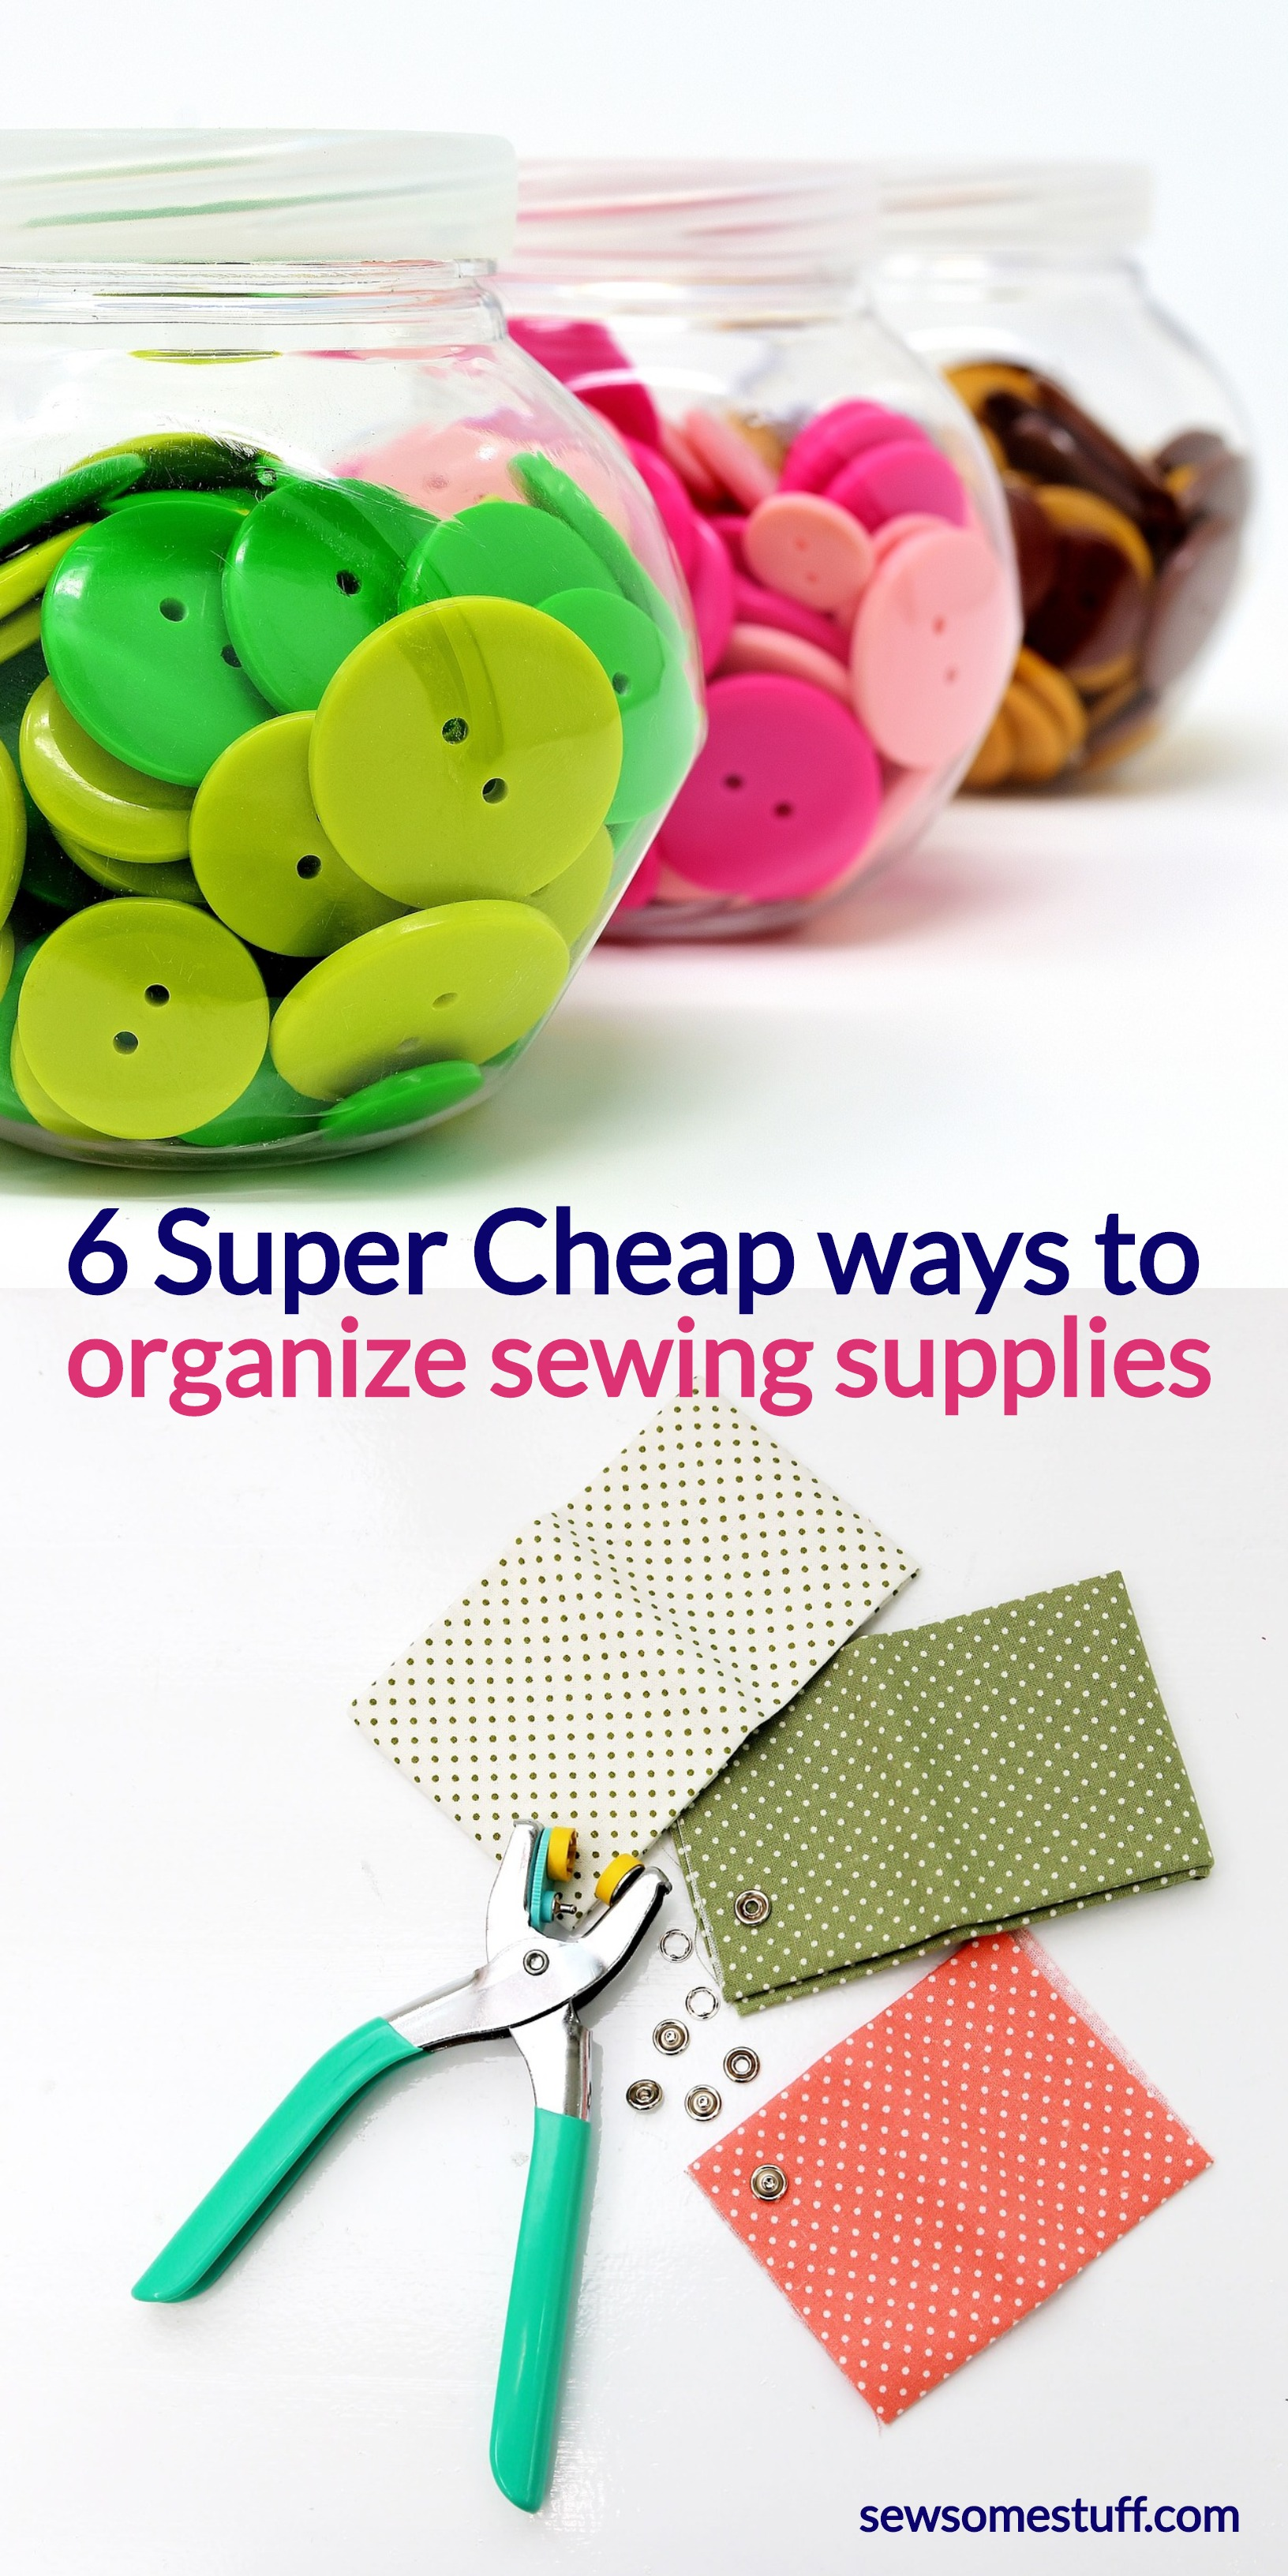 Check out these super cheap and easy sewing room storage ideas! craft room ideas for small spaces, setting up sewing room, how to organize sewing supplies, sewing nook ideas, crafters desk, sewing room storage and organization products, small sewing room organization